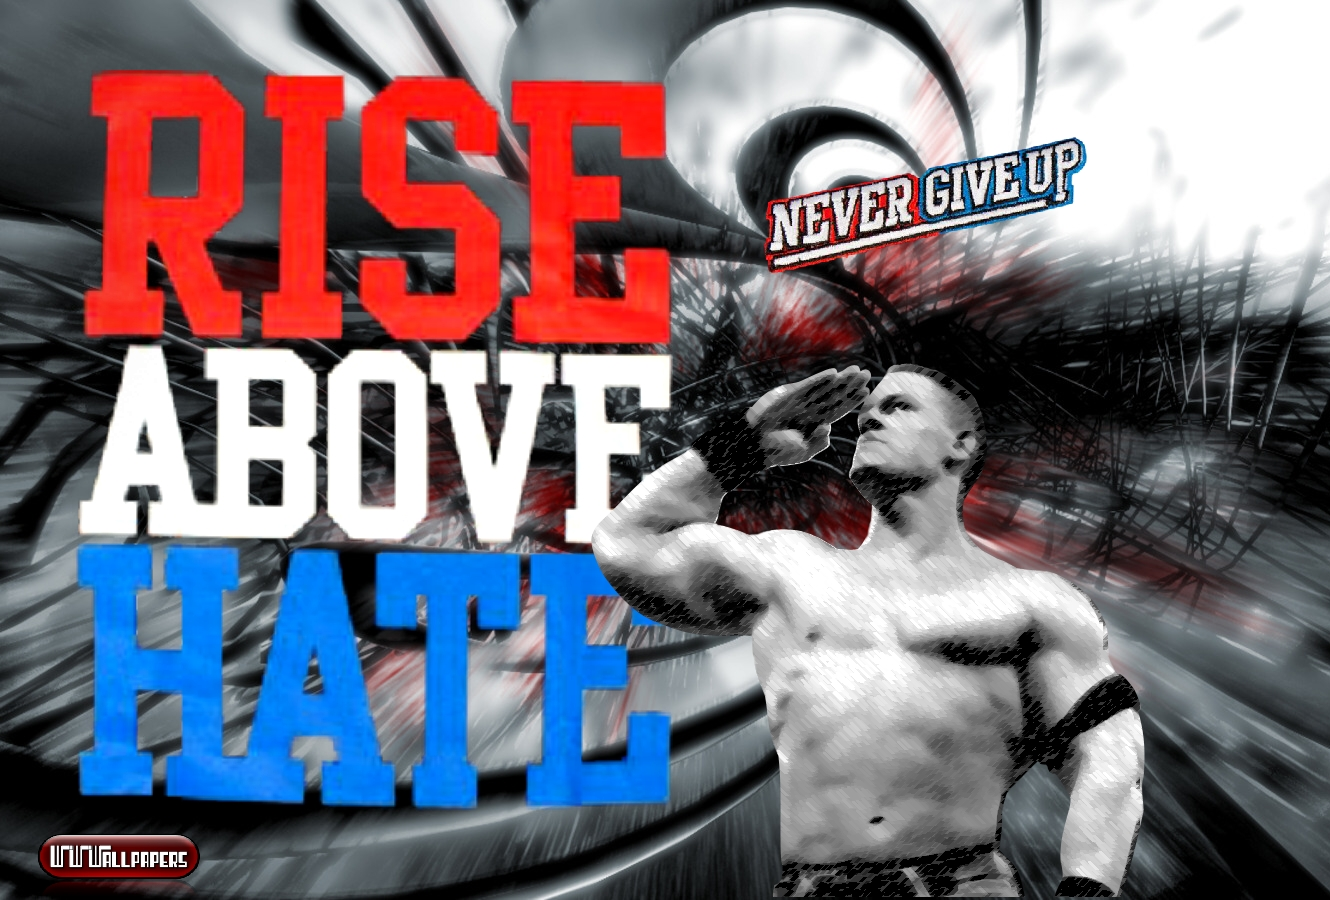 WWWallpapers / WWEWrestlingWallpapers Wallpapers, Fondos, WWE: John Cena Rise Above Hate Wallpaper